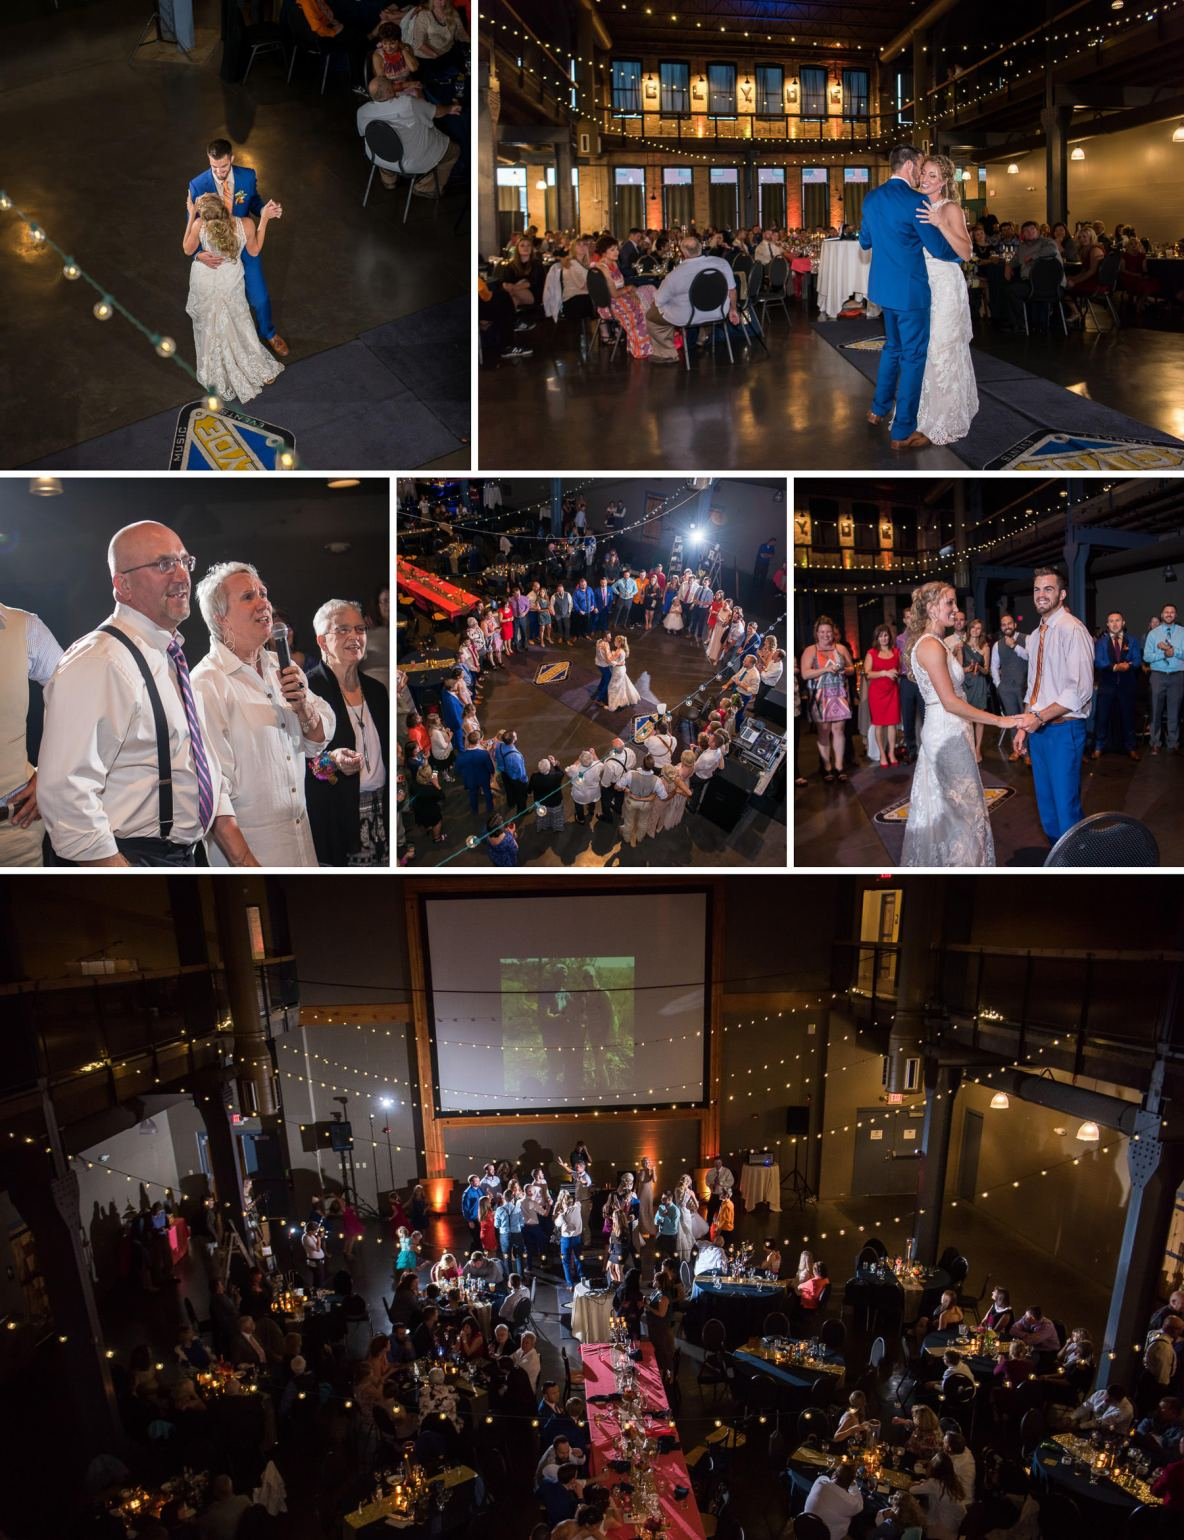 Collage of wedding reception including first dance photos and speeches.